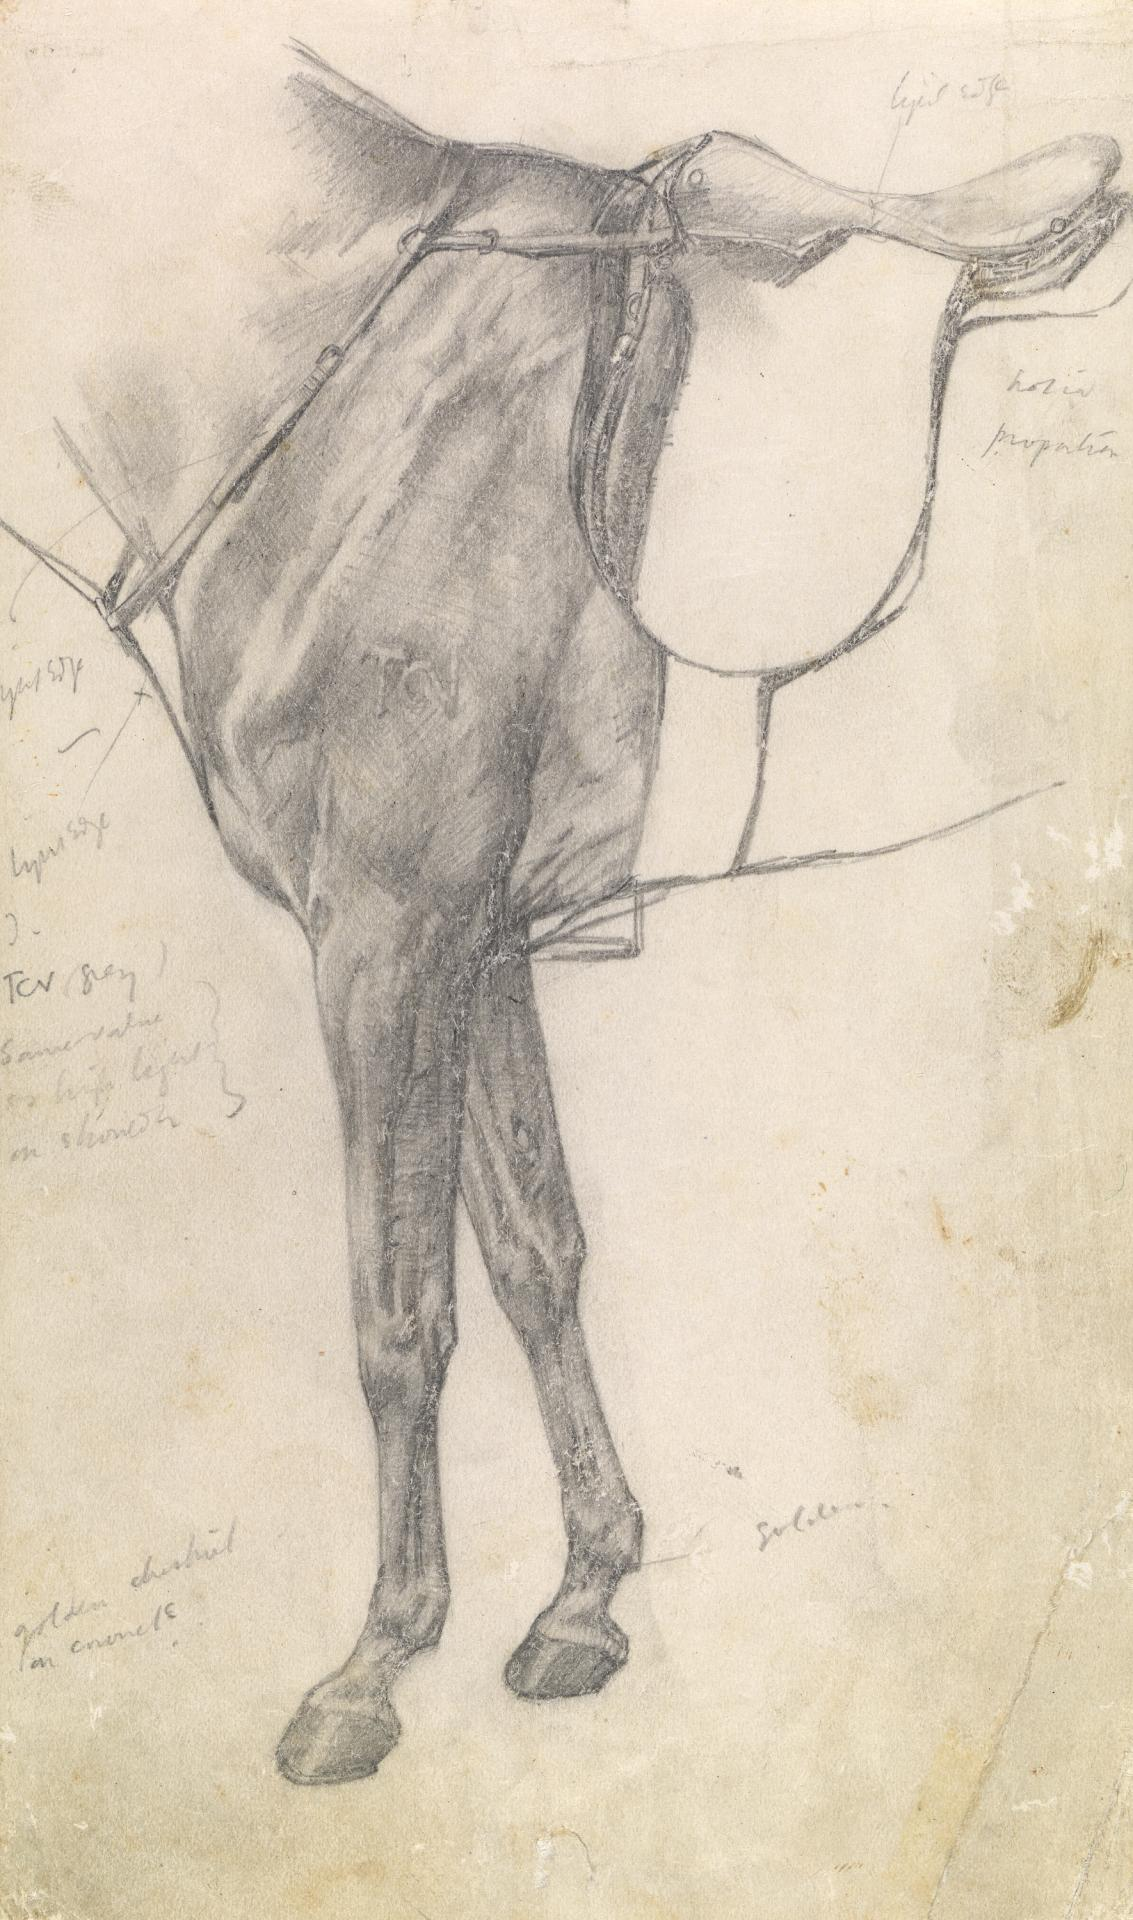 Study of the fore-quarters of a horse with saddle